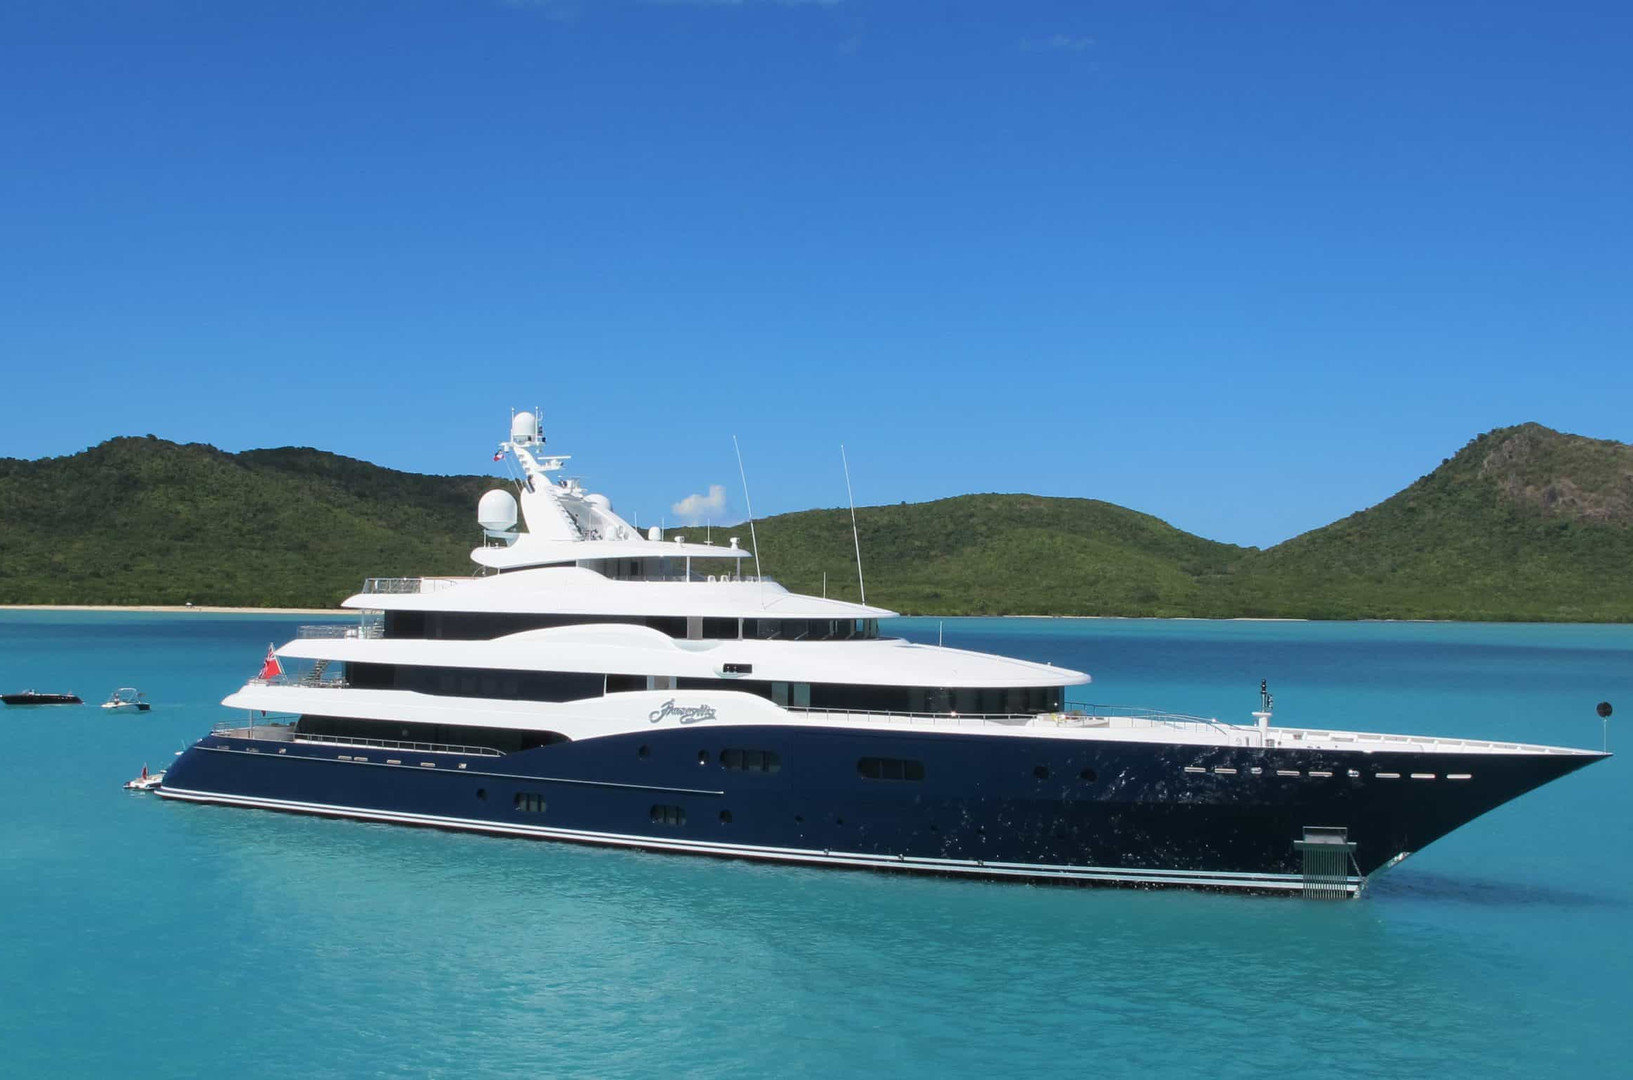 Yacht AMARYLLIS - at anchor on charter in the Caribbean